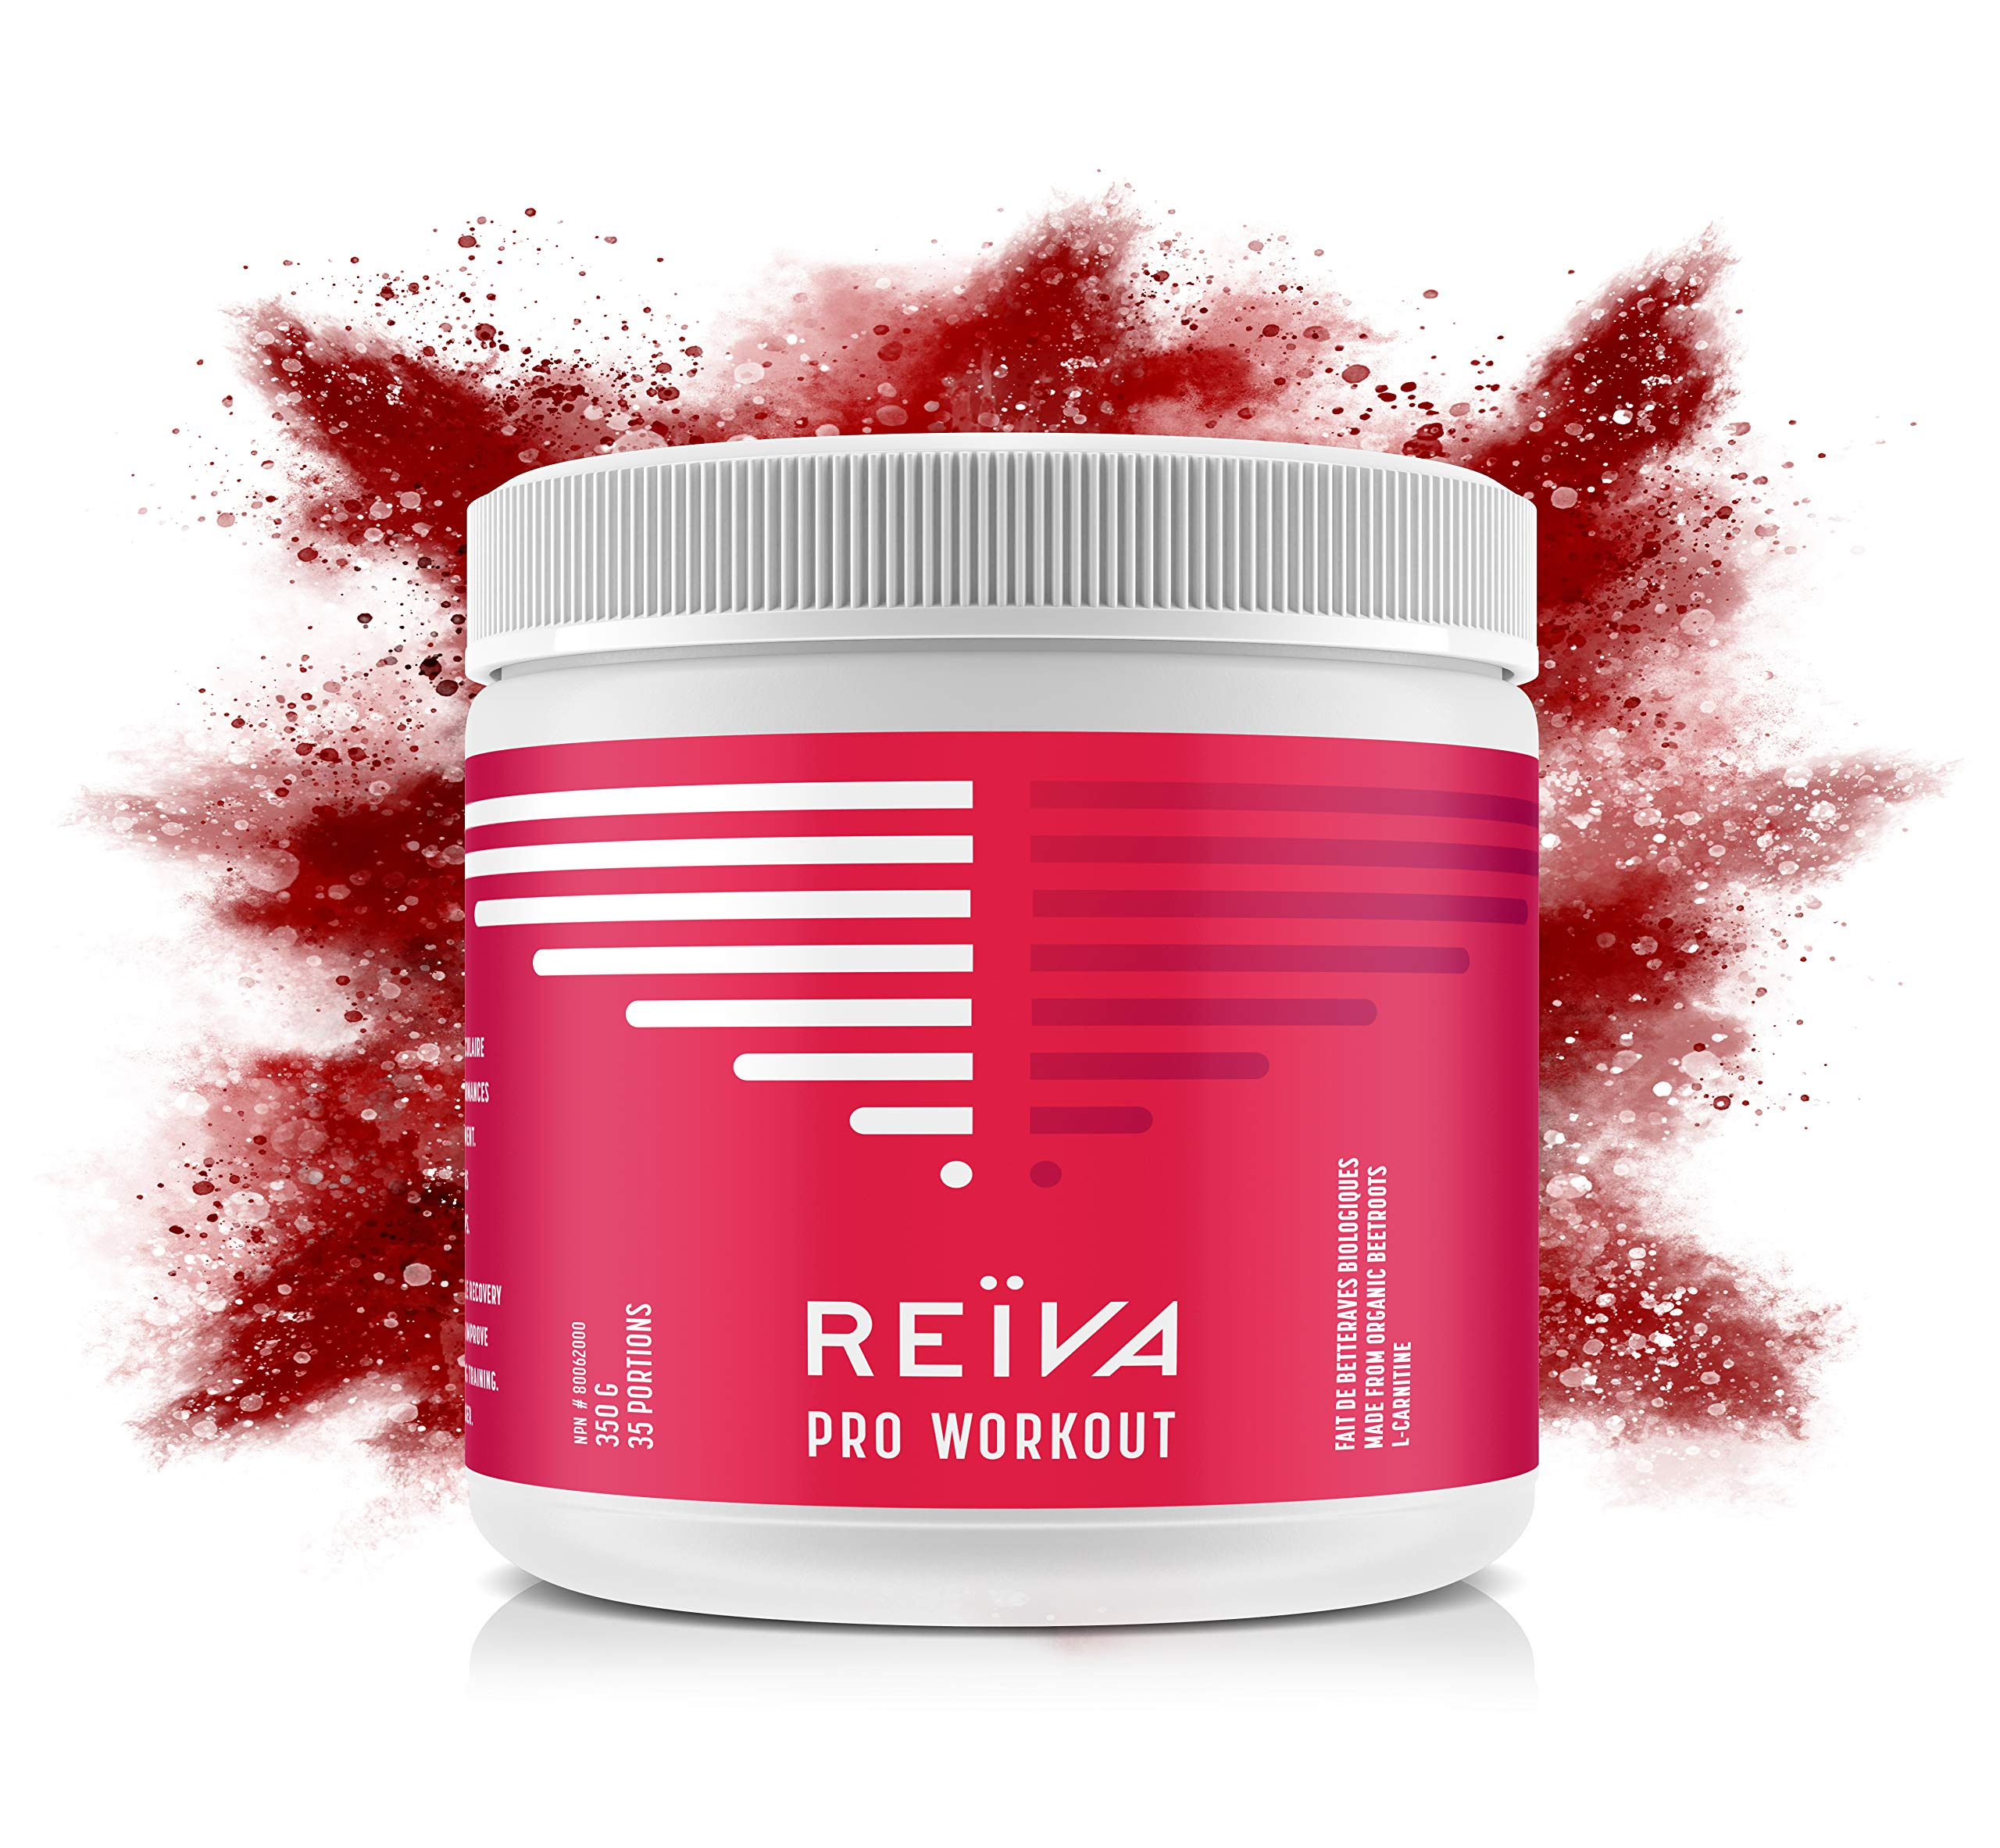 Reïva Organic Beetroot Pro Workout with L-Carnitine   Non-GMO, Gluten Free & Vegan   Nitric Oxide Pre-Workout Booster + Fat Burning  Improve Athletic Performance, Energy and Muscle Recovery   350g